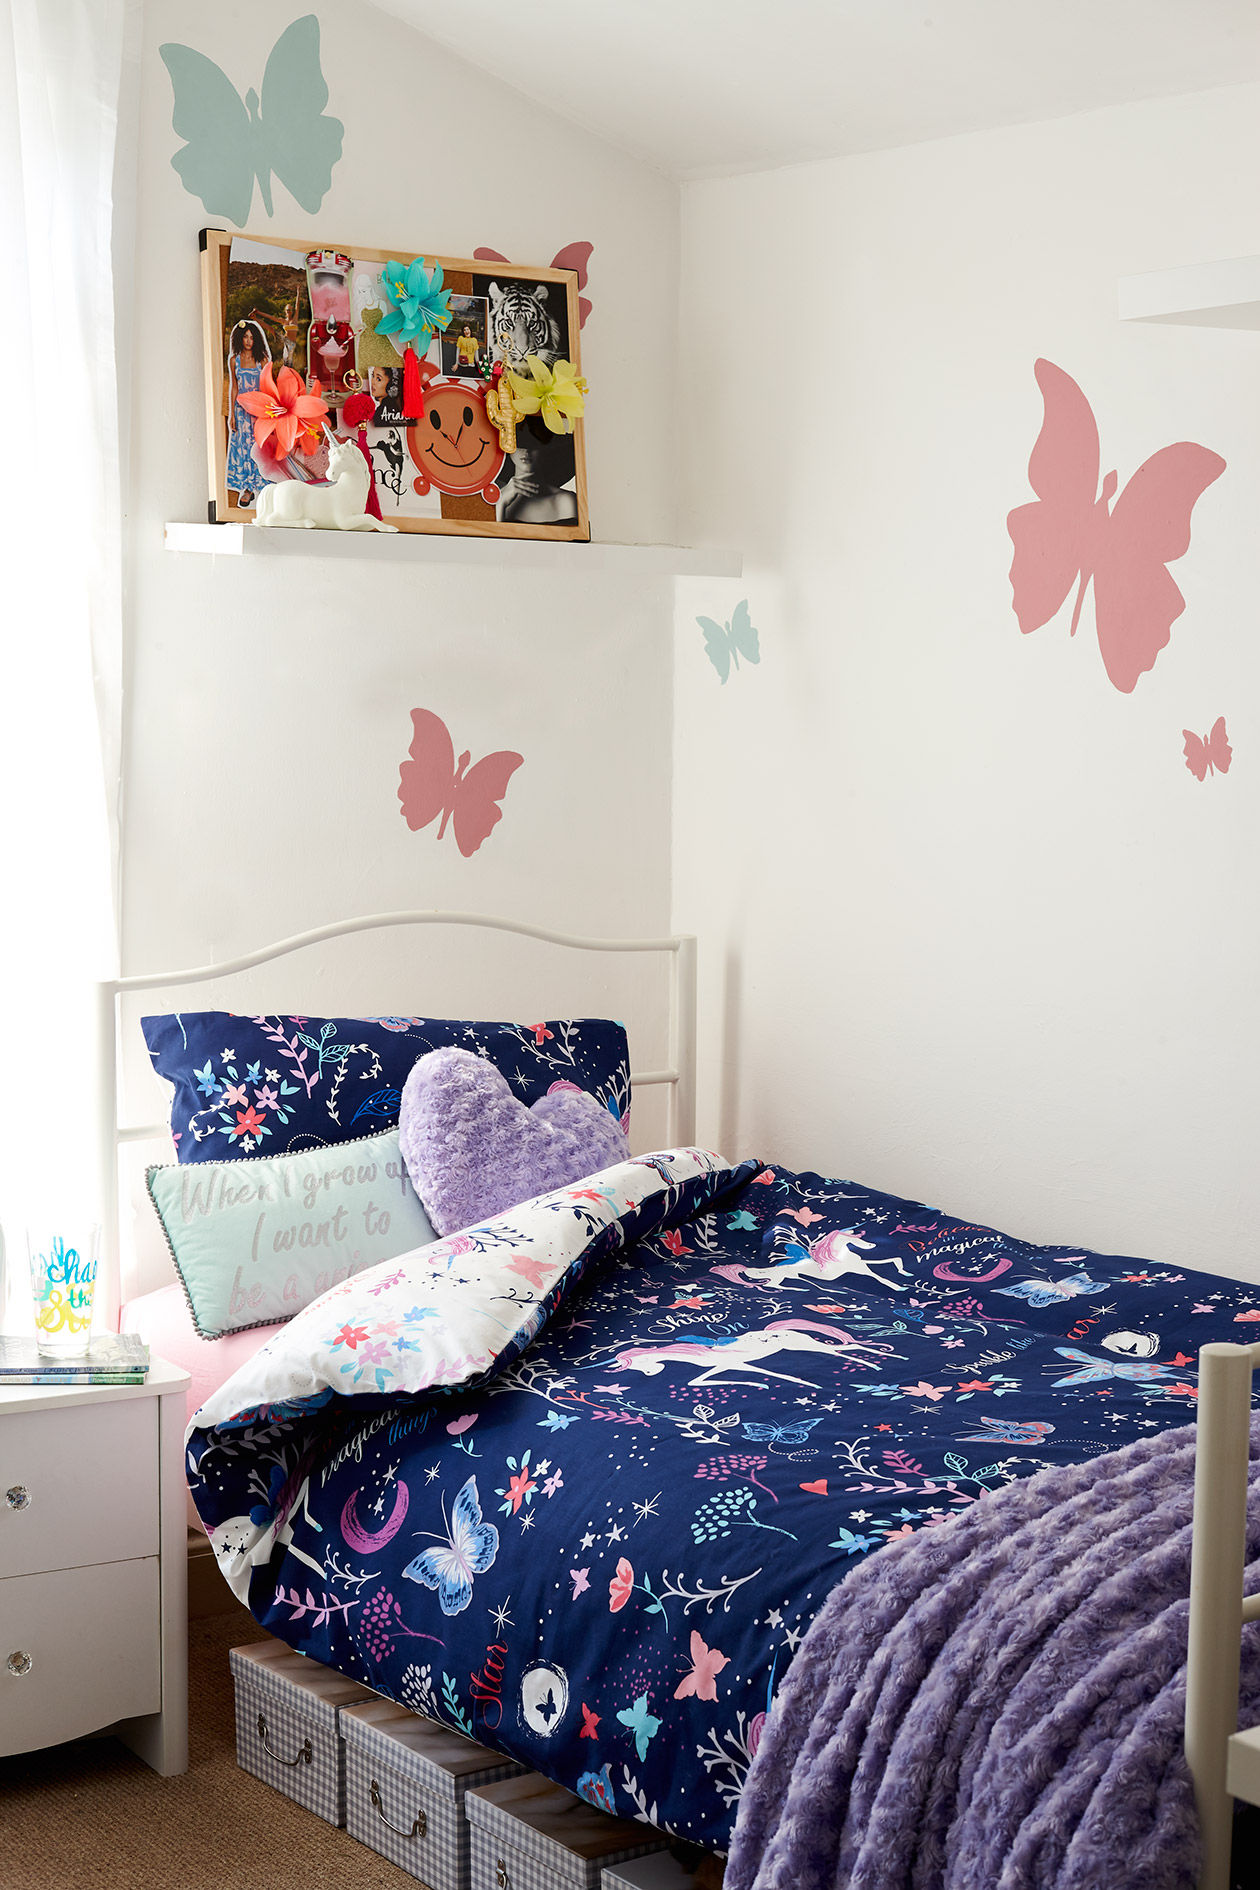 8 easy ways to transform your child's bedroom